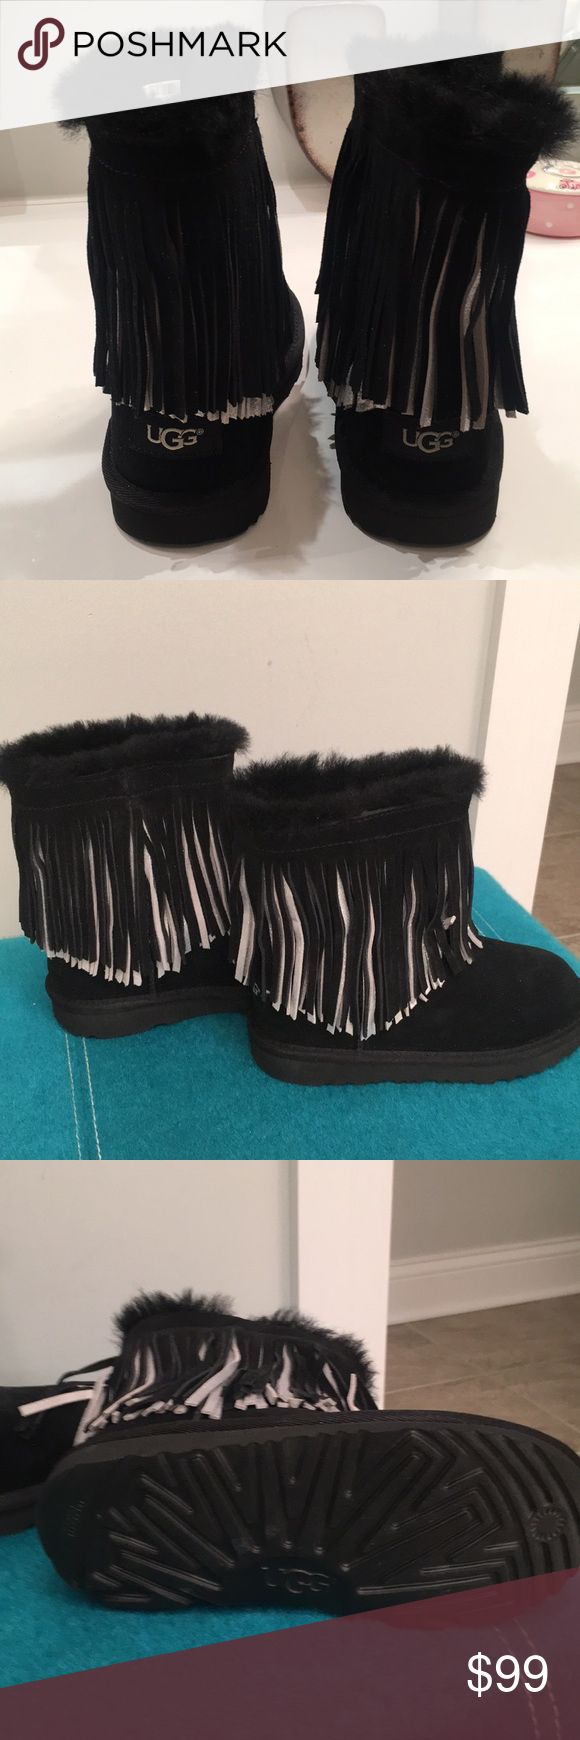 Girls ugg boots Girls NWT silver and black fringe authentic ugg boots. No box. UGG Shoes Boots